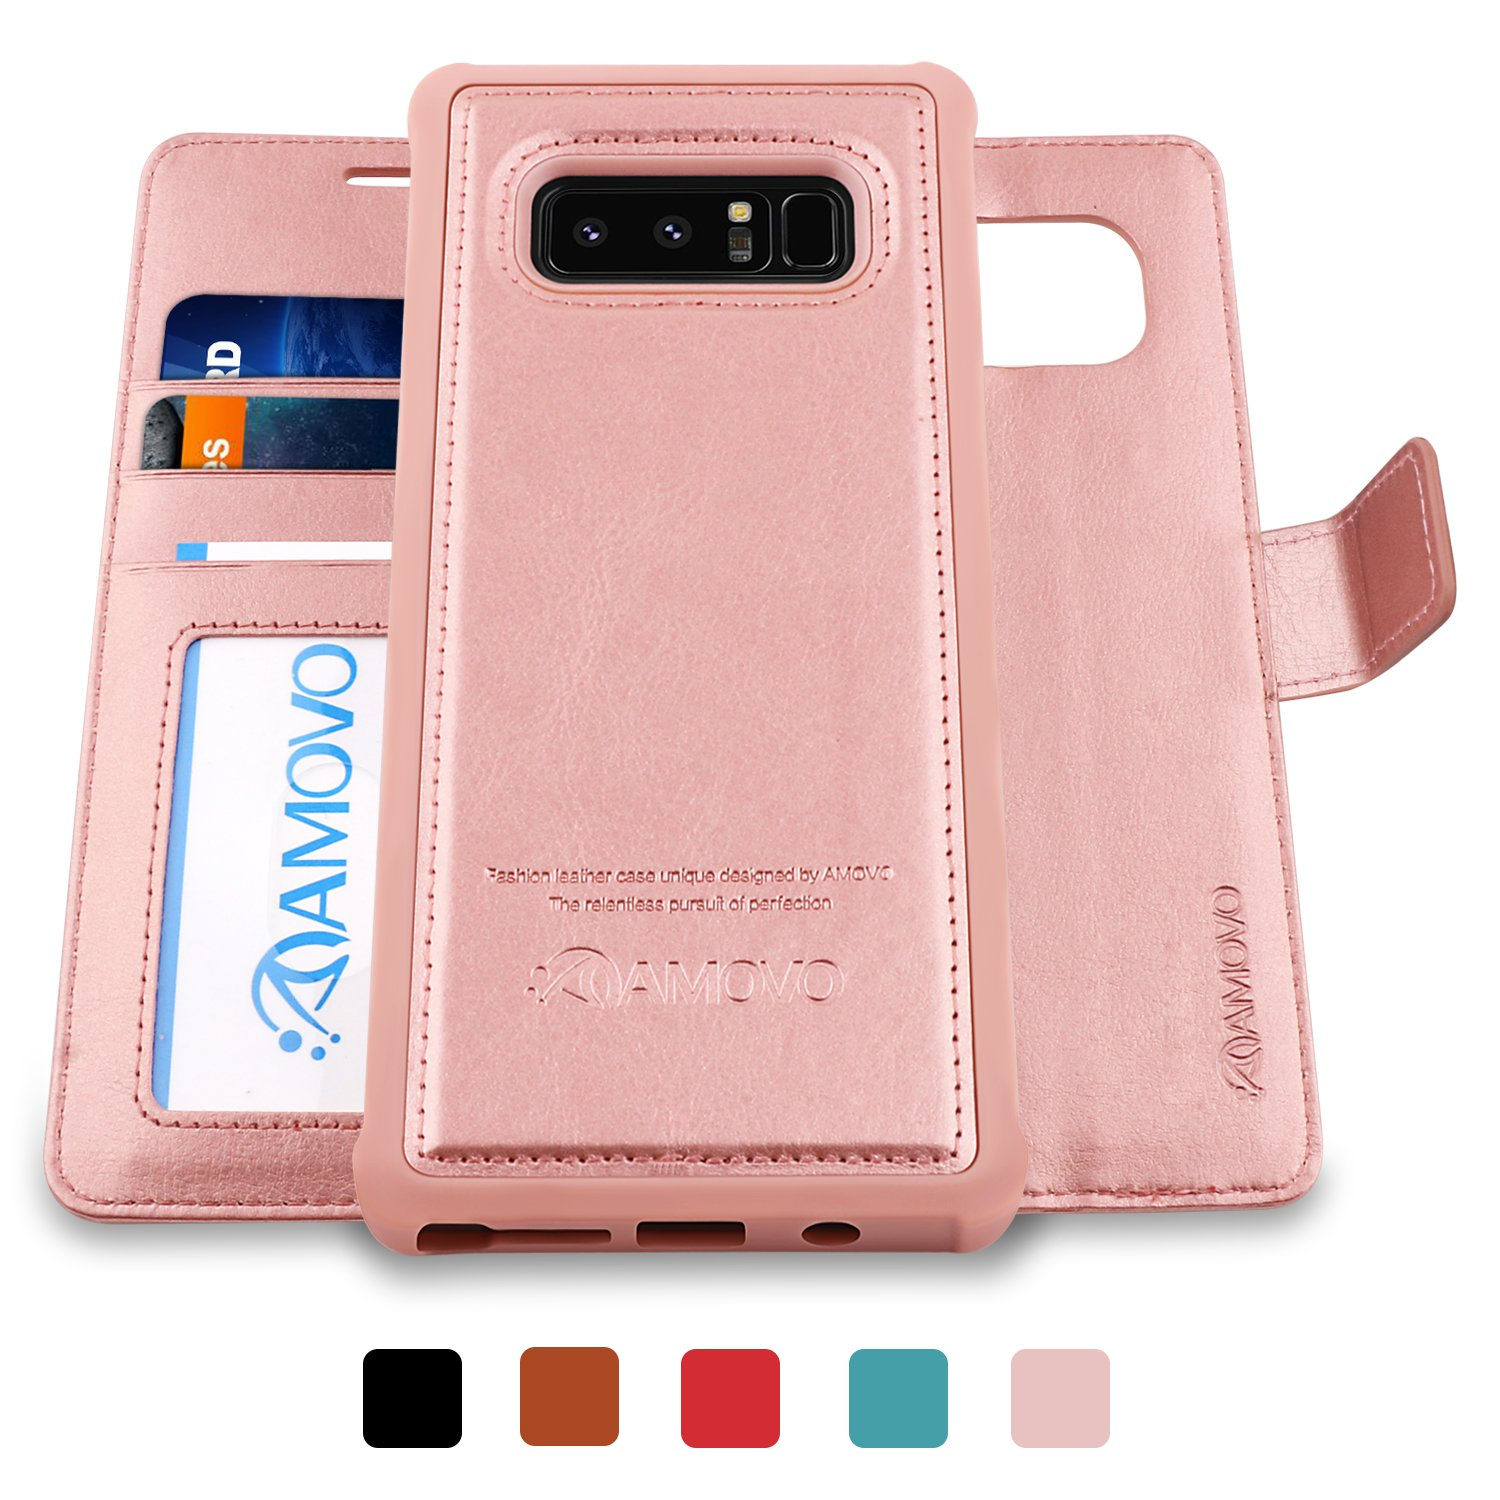 AMOVO Galaxy Note 8 Case [2 in 1]  Samsung Galaxy Note 8 Wallet Case [Detachable Wallet Folio] [Premium Vegan Leather] Samsung Note 8 Flip Cover with Gift Box Package (Rose Gold)